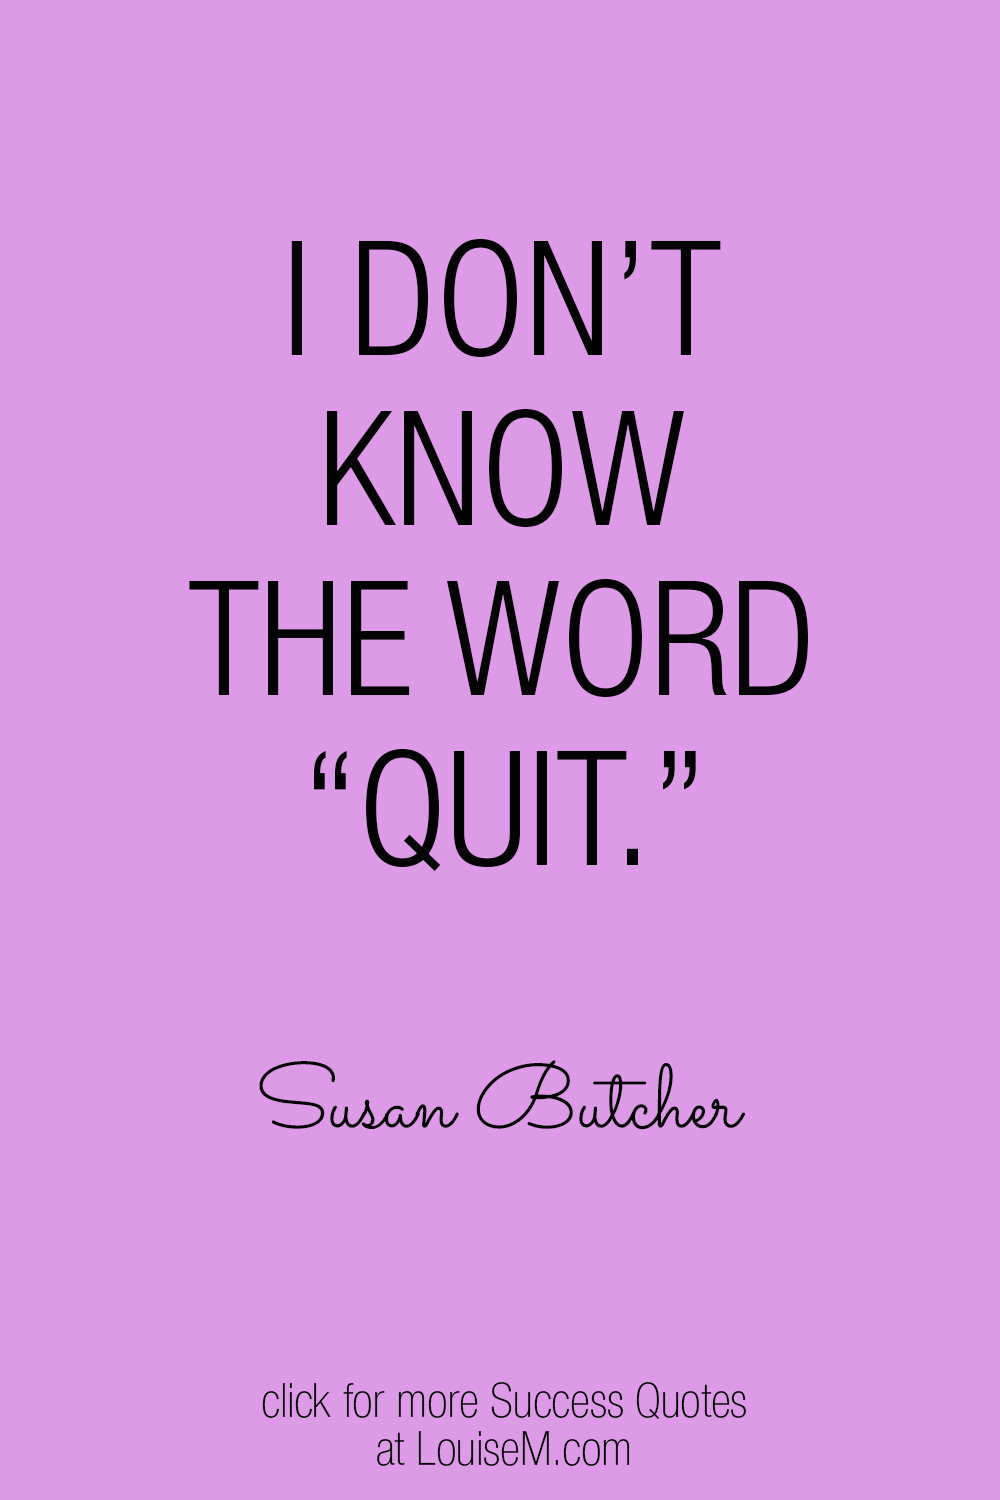 I don't know the word quit graphic quote